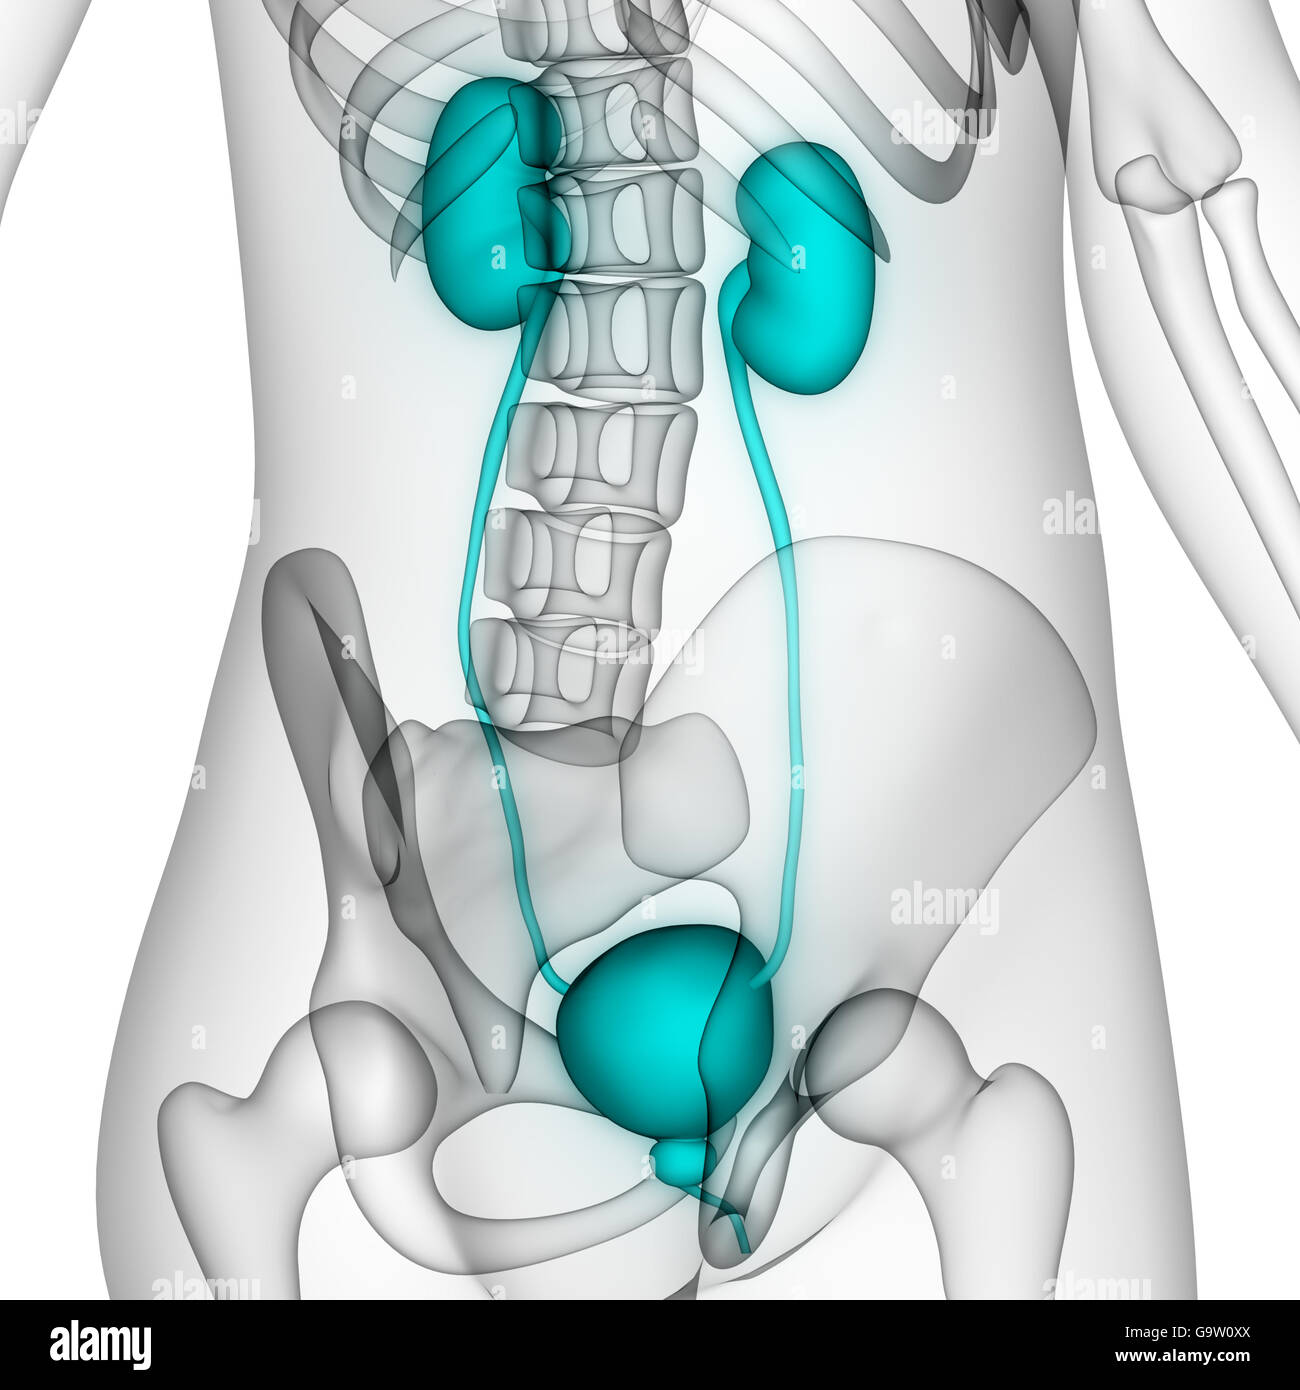 Human Kidney Anatomy Stock Photos Human Kidney Anatomy Stock